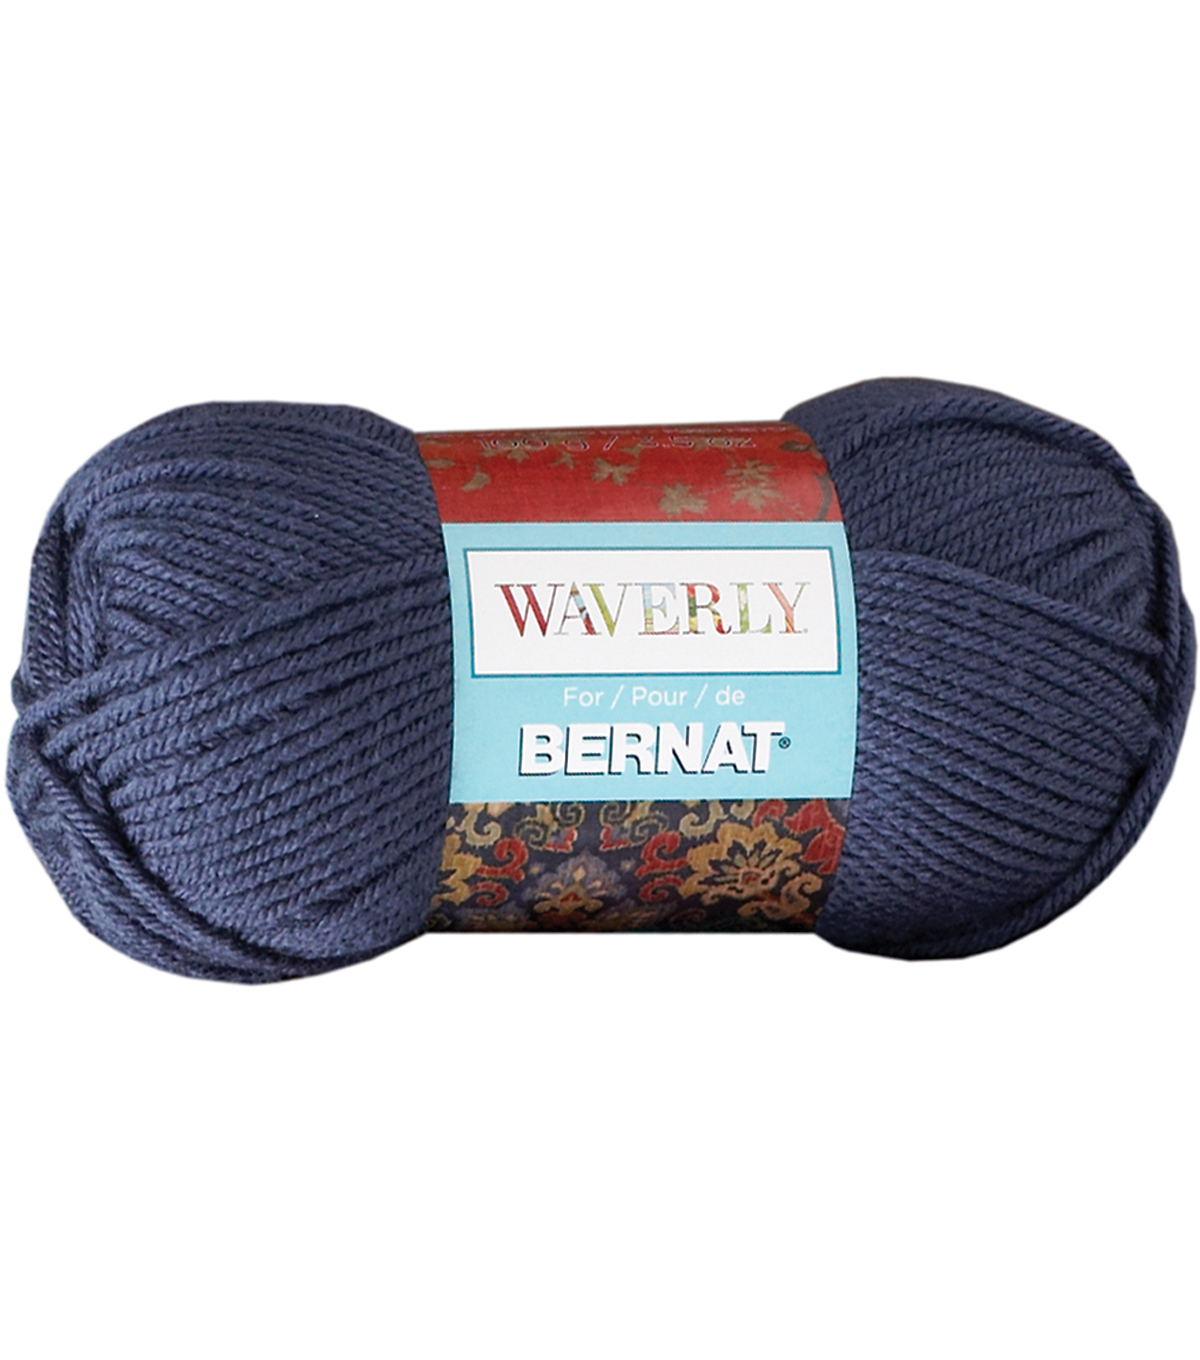 Bernat Waverly Yarn